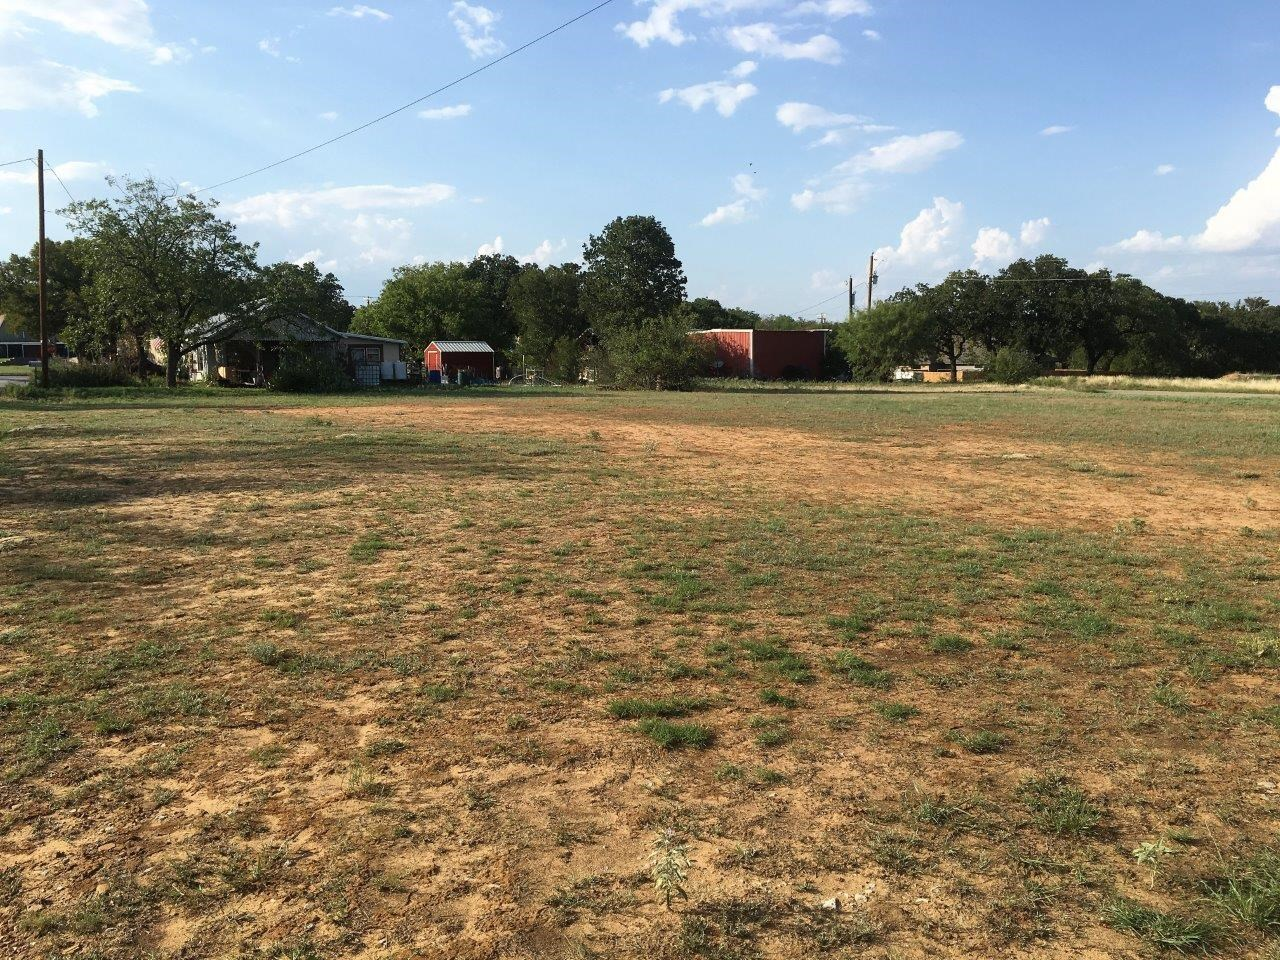 LARGE REAL ESTATE TRACT TO DEVELOP ON BROWNWOOD, TX